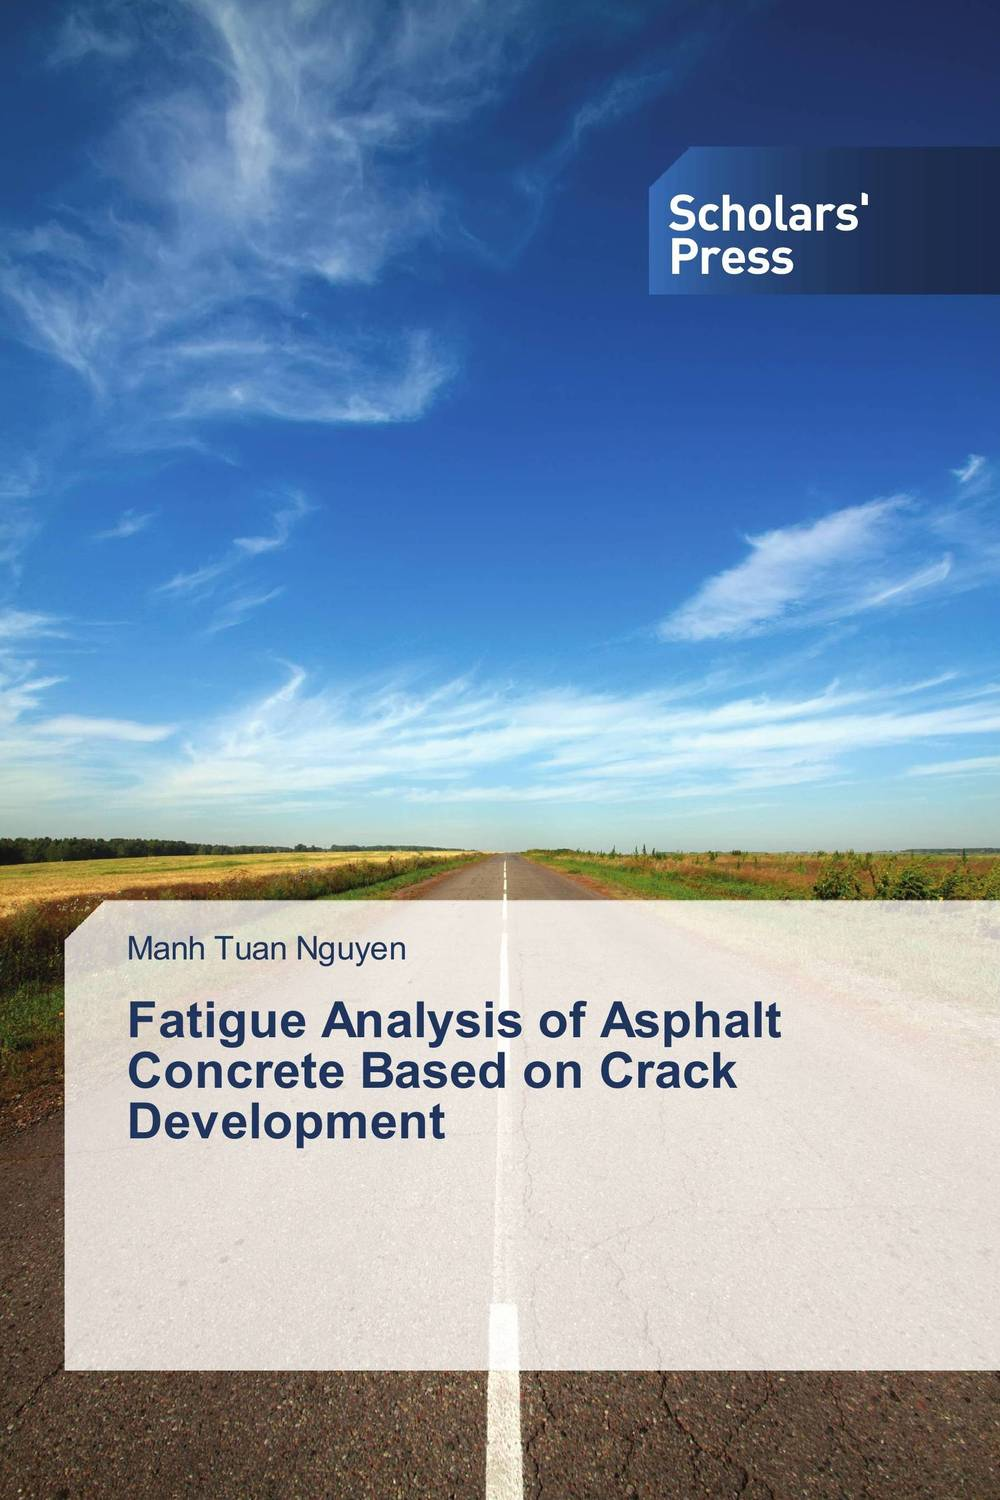 где купить Fatigue Analysis of Asphalt Concrete Based on Crack Development по лучшей цене